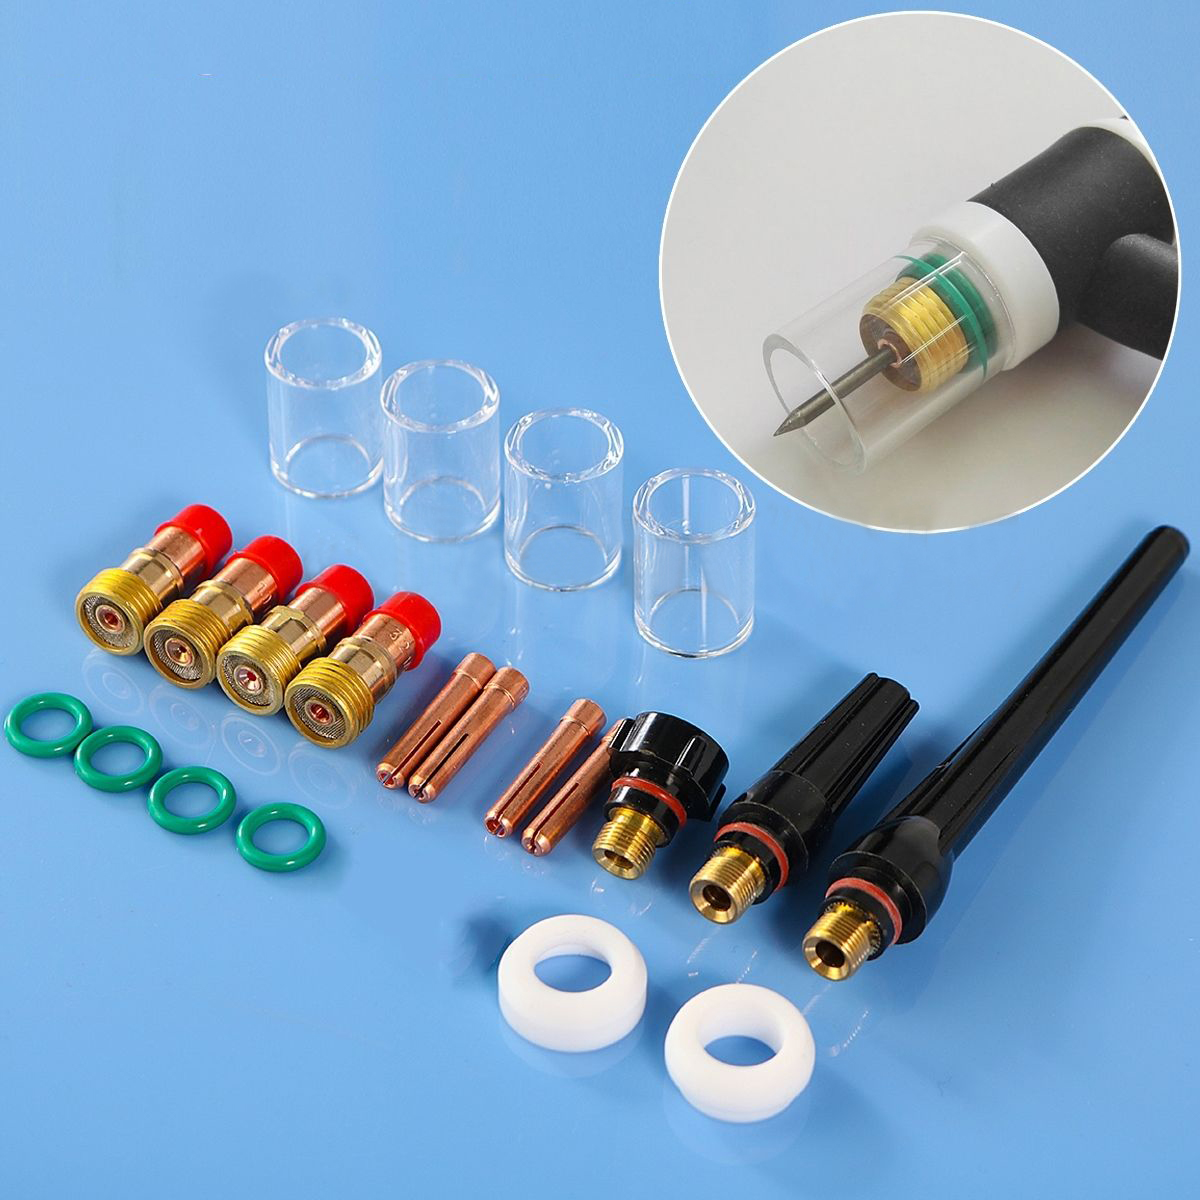 21pcs Mayitr TIG Welding Torch Kit Sollets Body Stubby Gas Lens #10 Pyrex Cup for WP-17/18/26 Torch Consumables Accessories